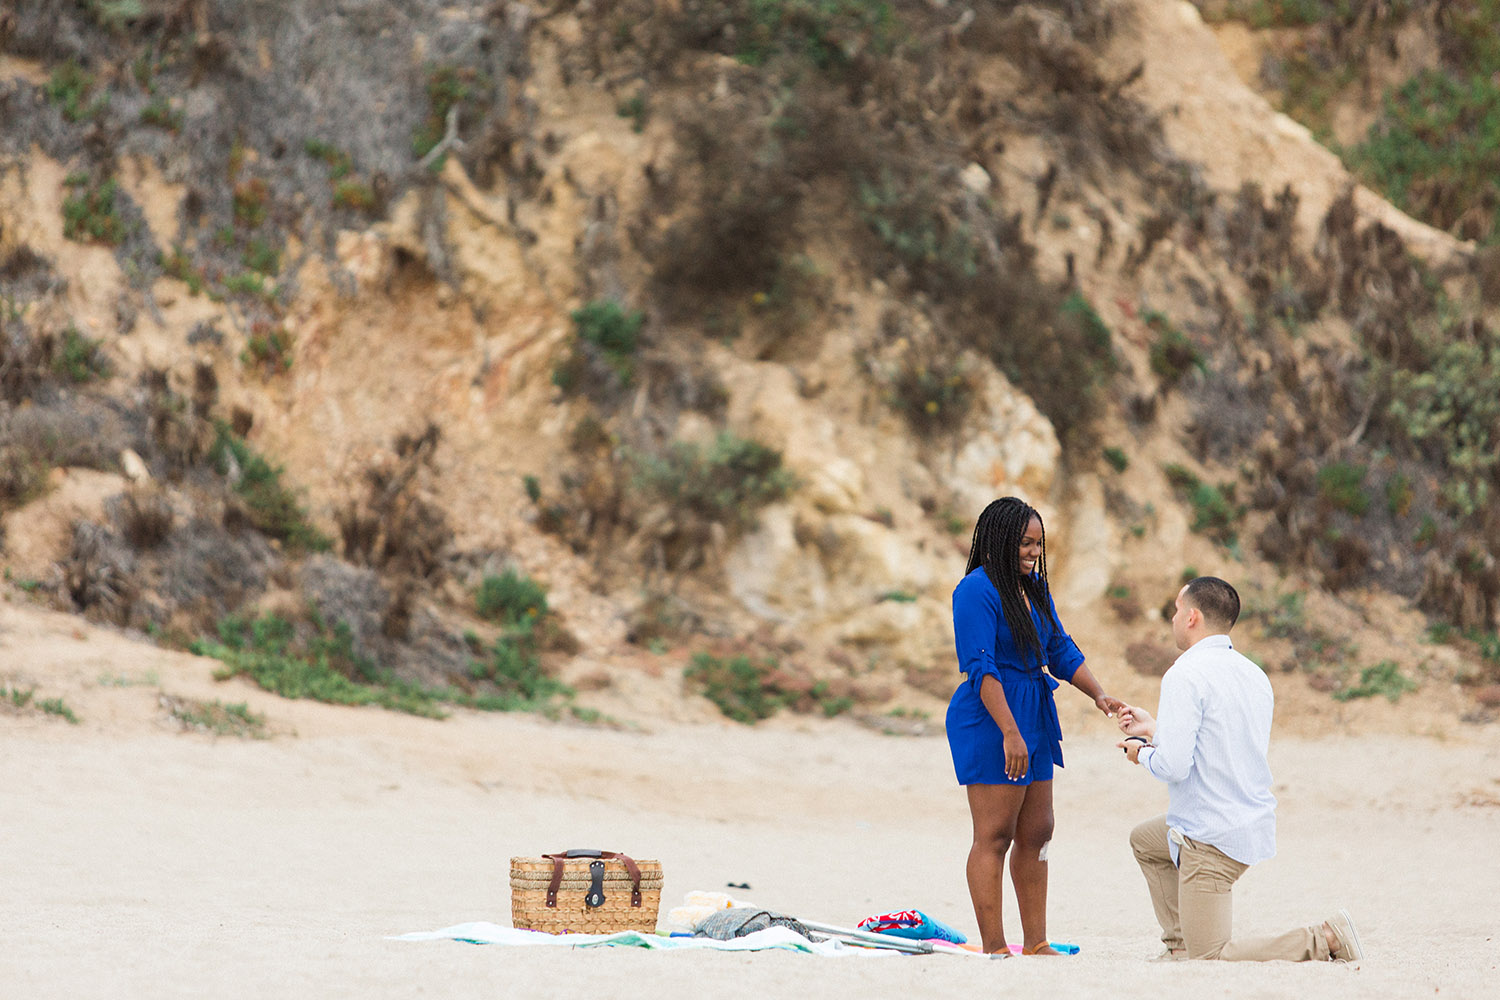 los-angeles-proposal-photographer002.jpg